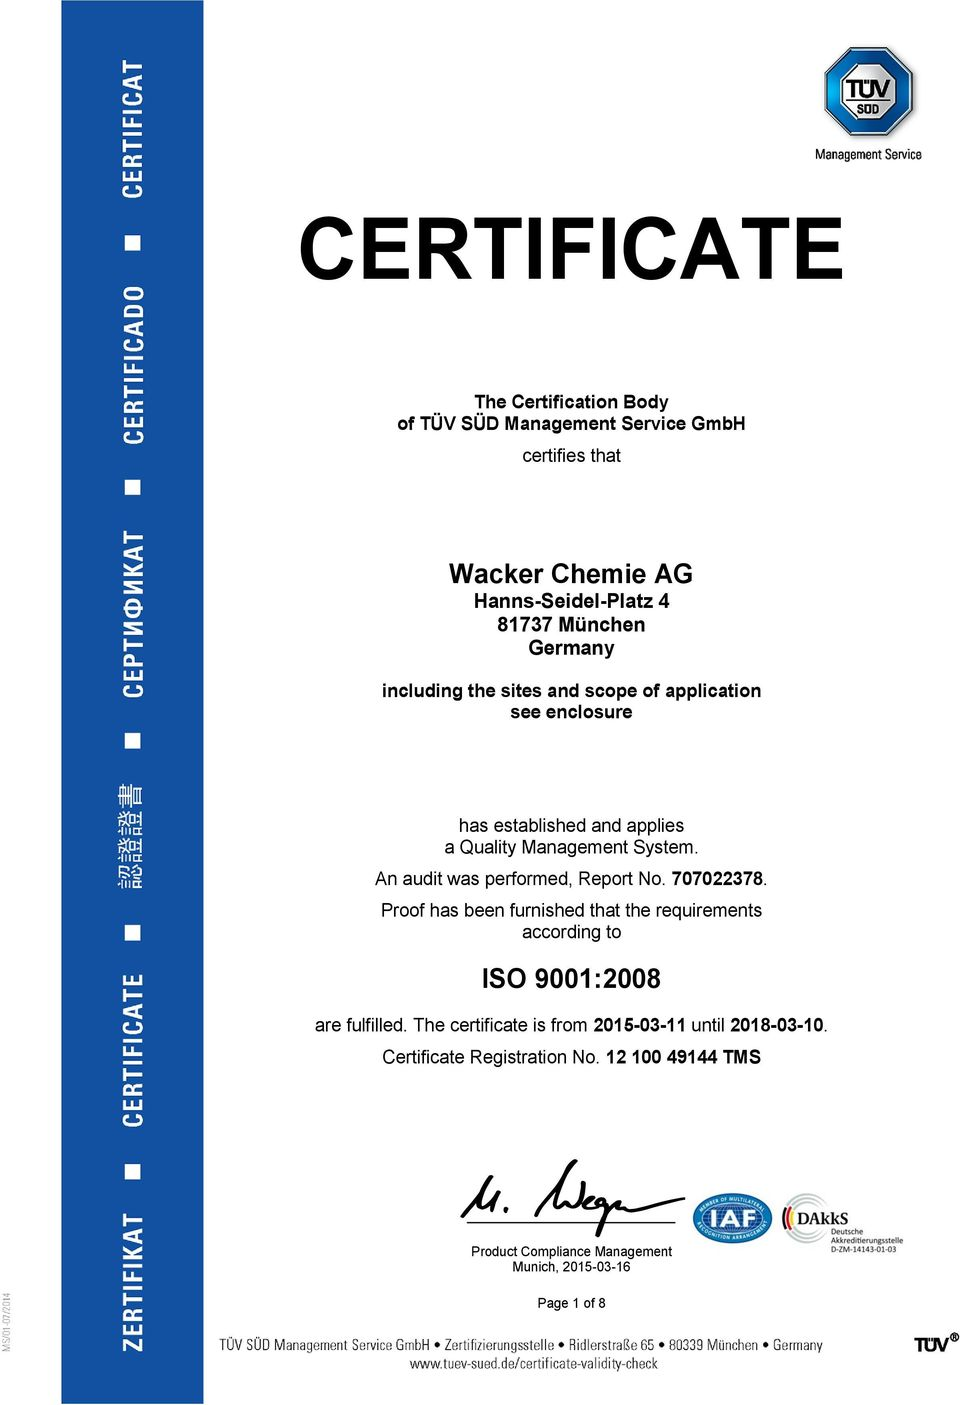 707022378. Proof has been furnished that the requirements according to ISO 9001:2008 are fulfilled.